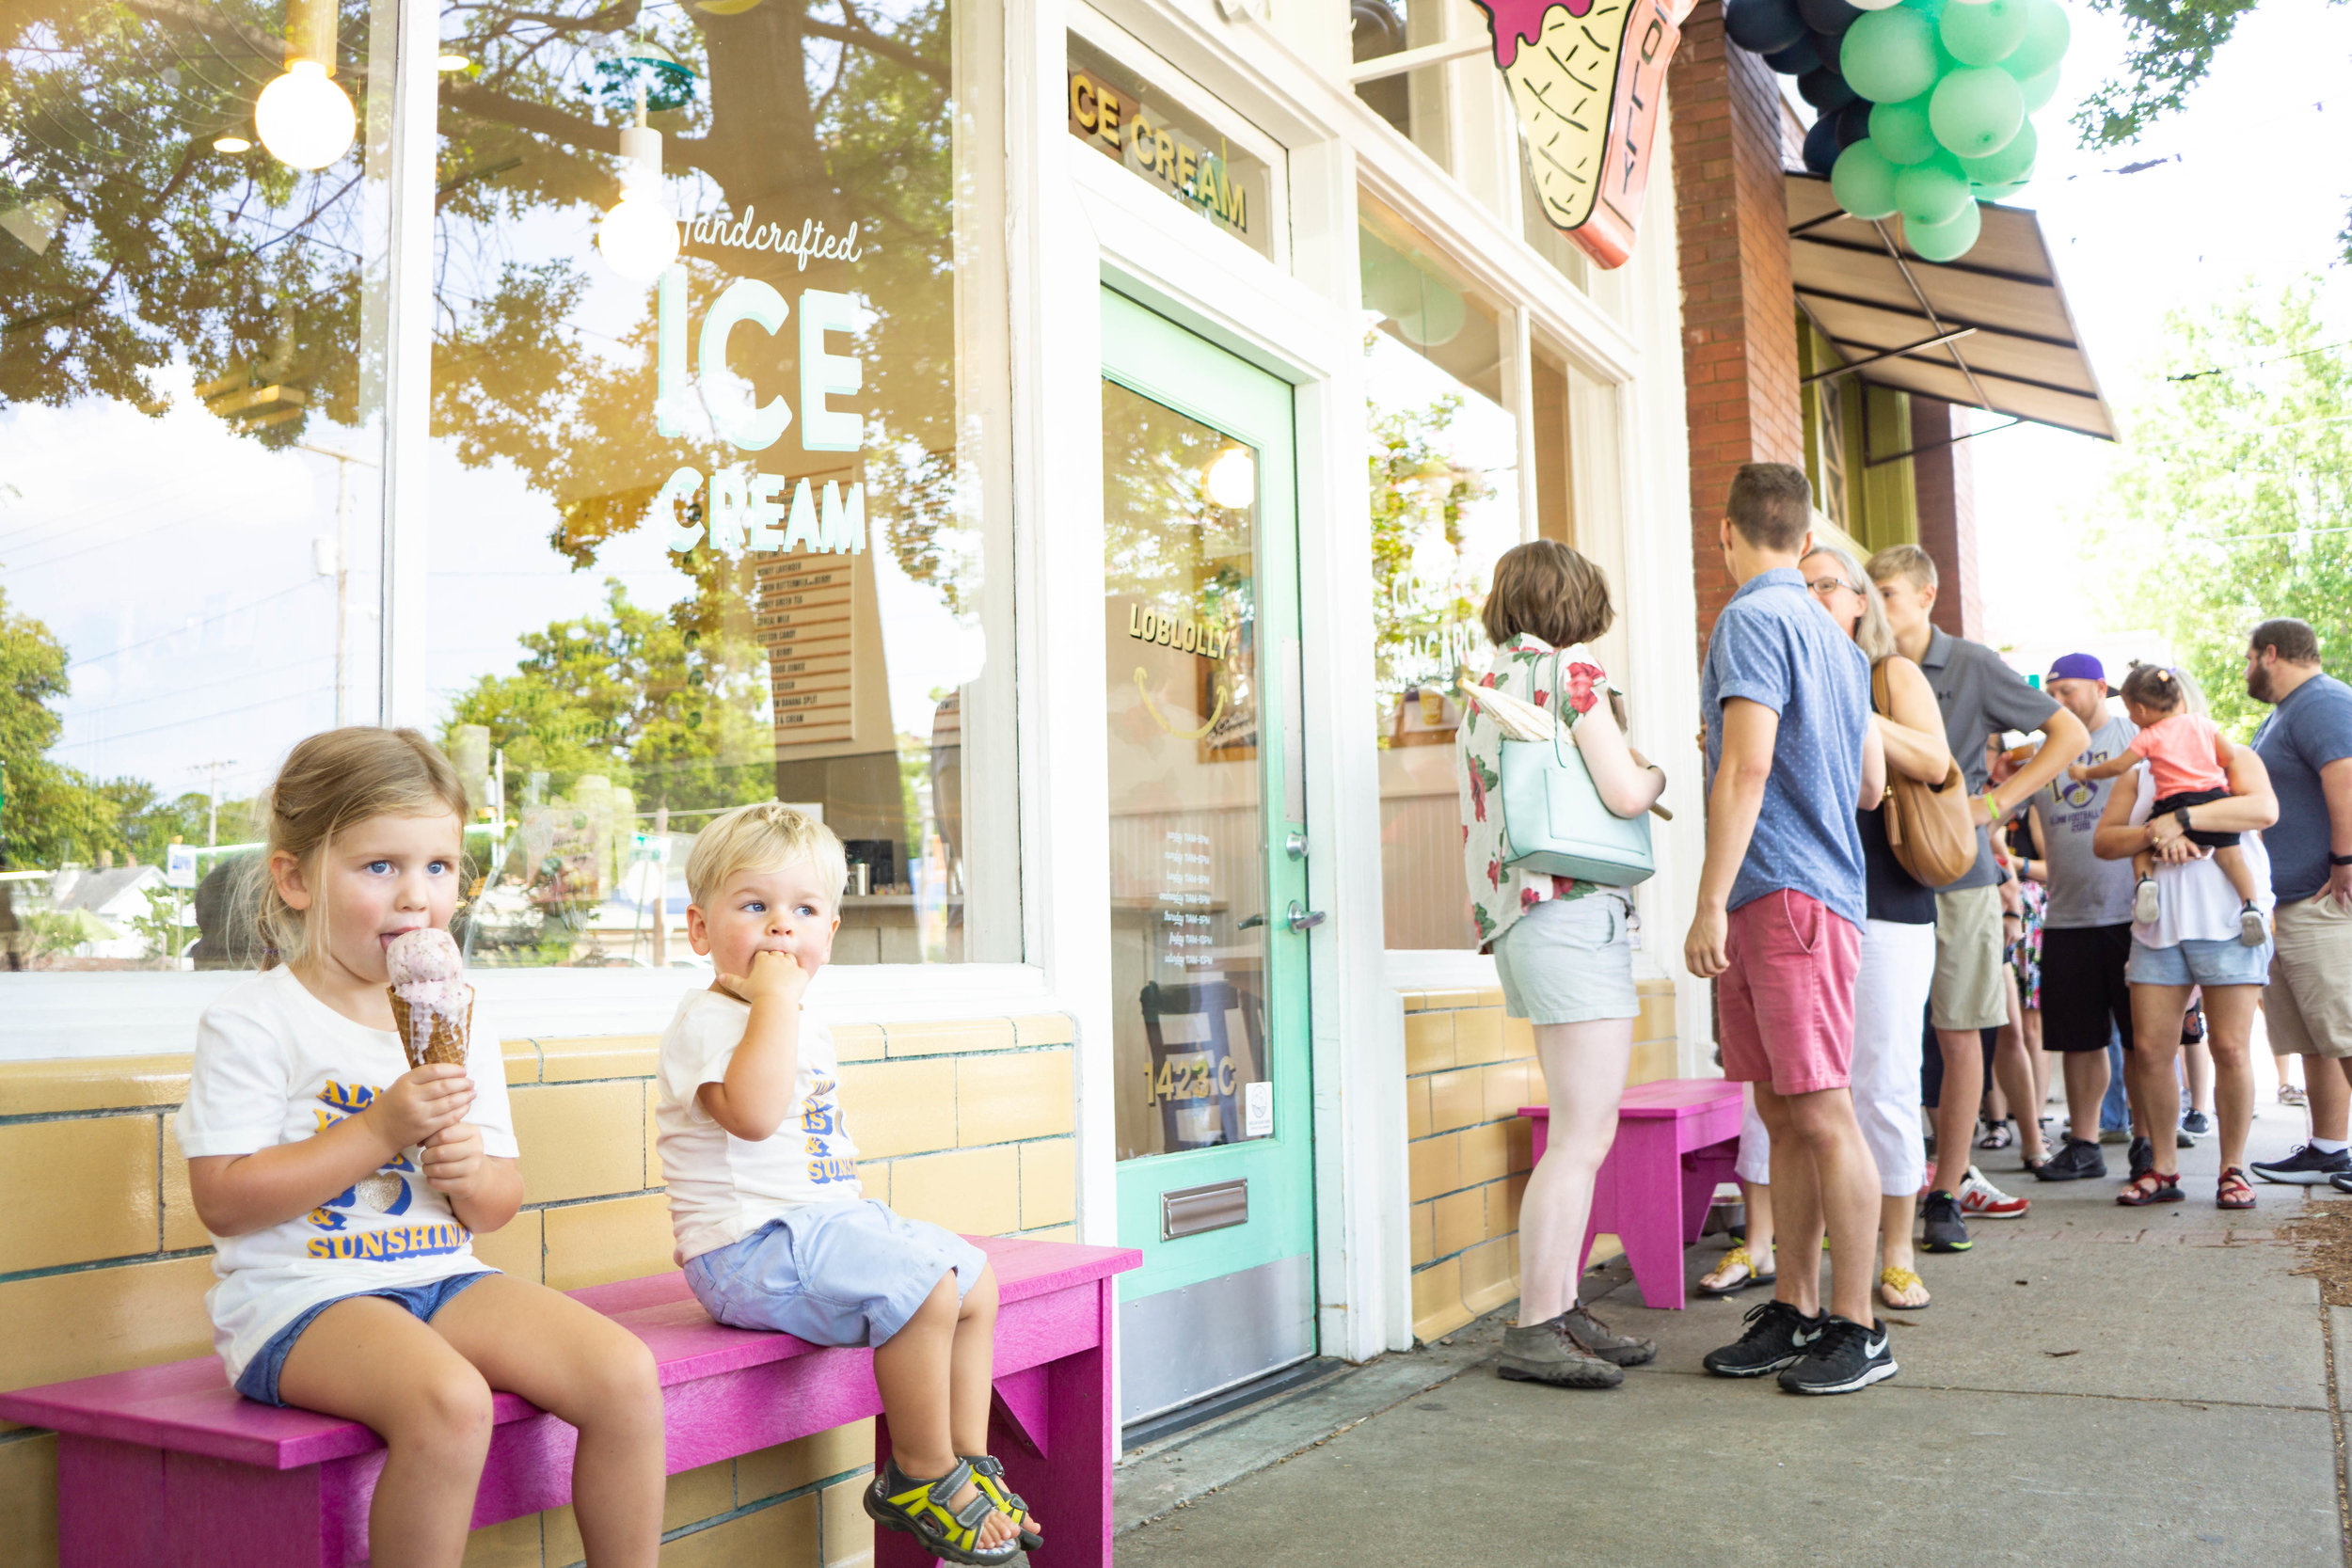 The kids enjoying their ice cream while the long line formed